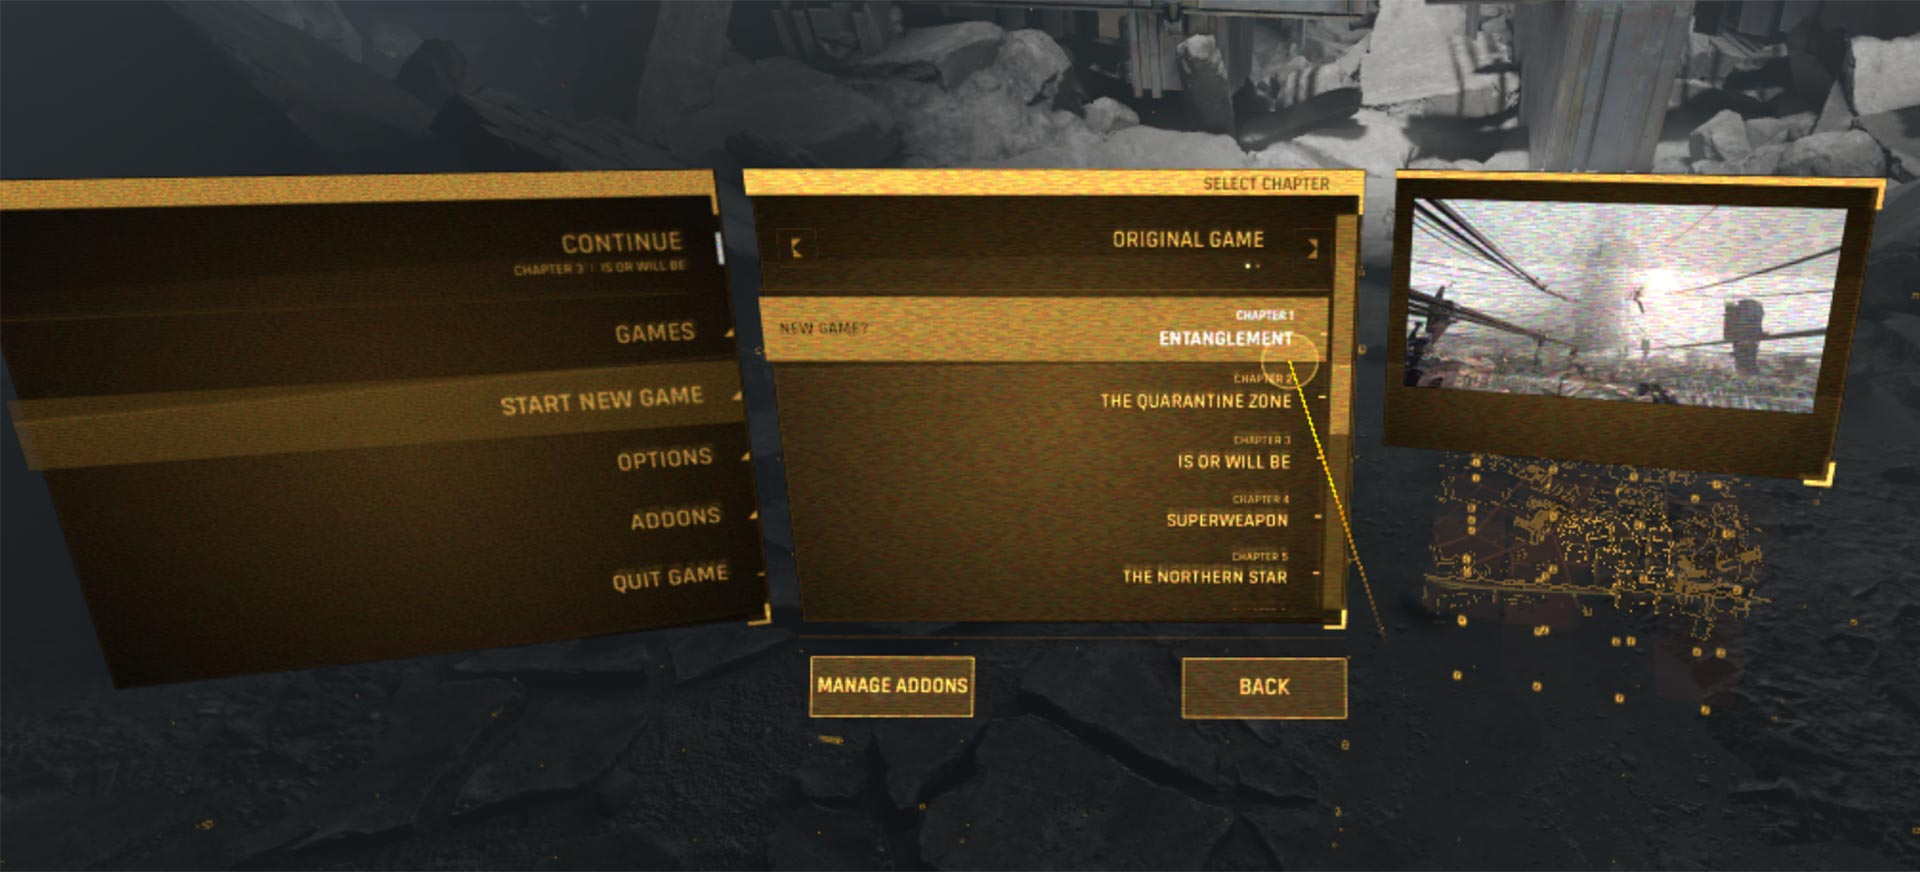 The Menu in  Half-Life Alyx VR shows two levels, the text ist set in capital letters in tiny sizes on a noisy background and extremely hard to read